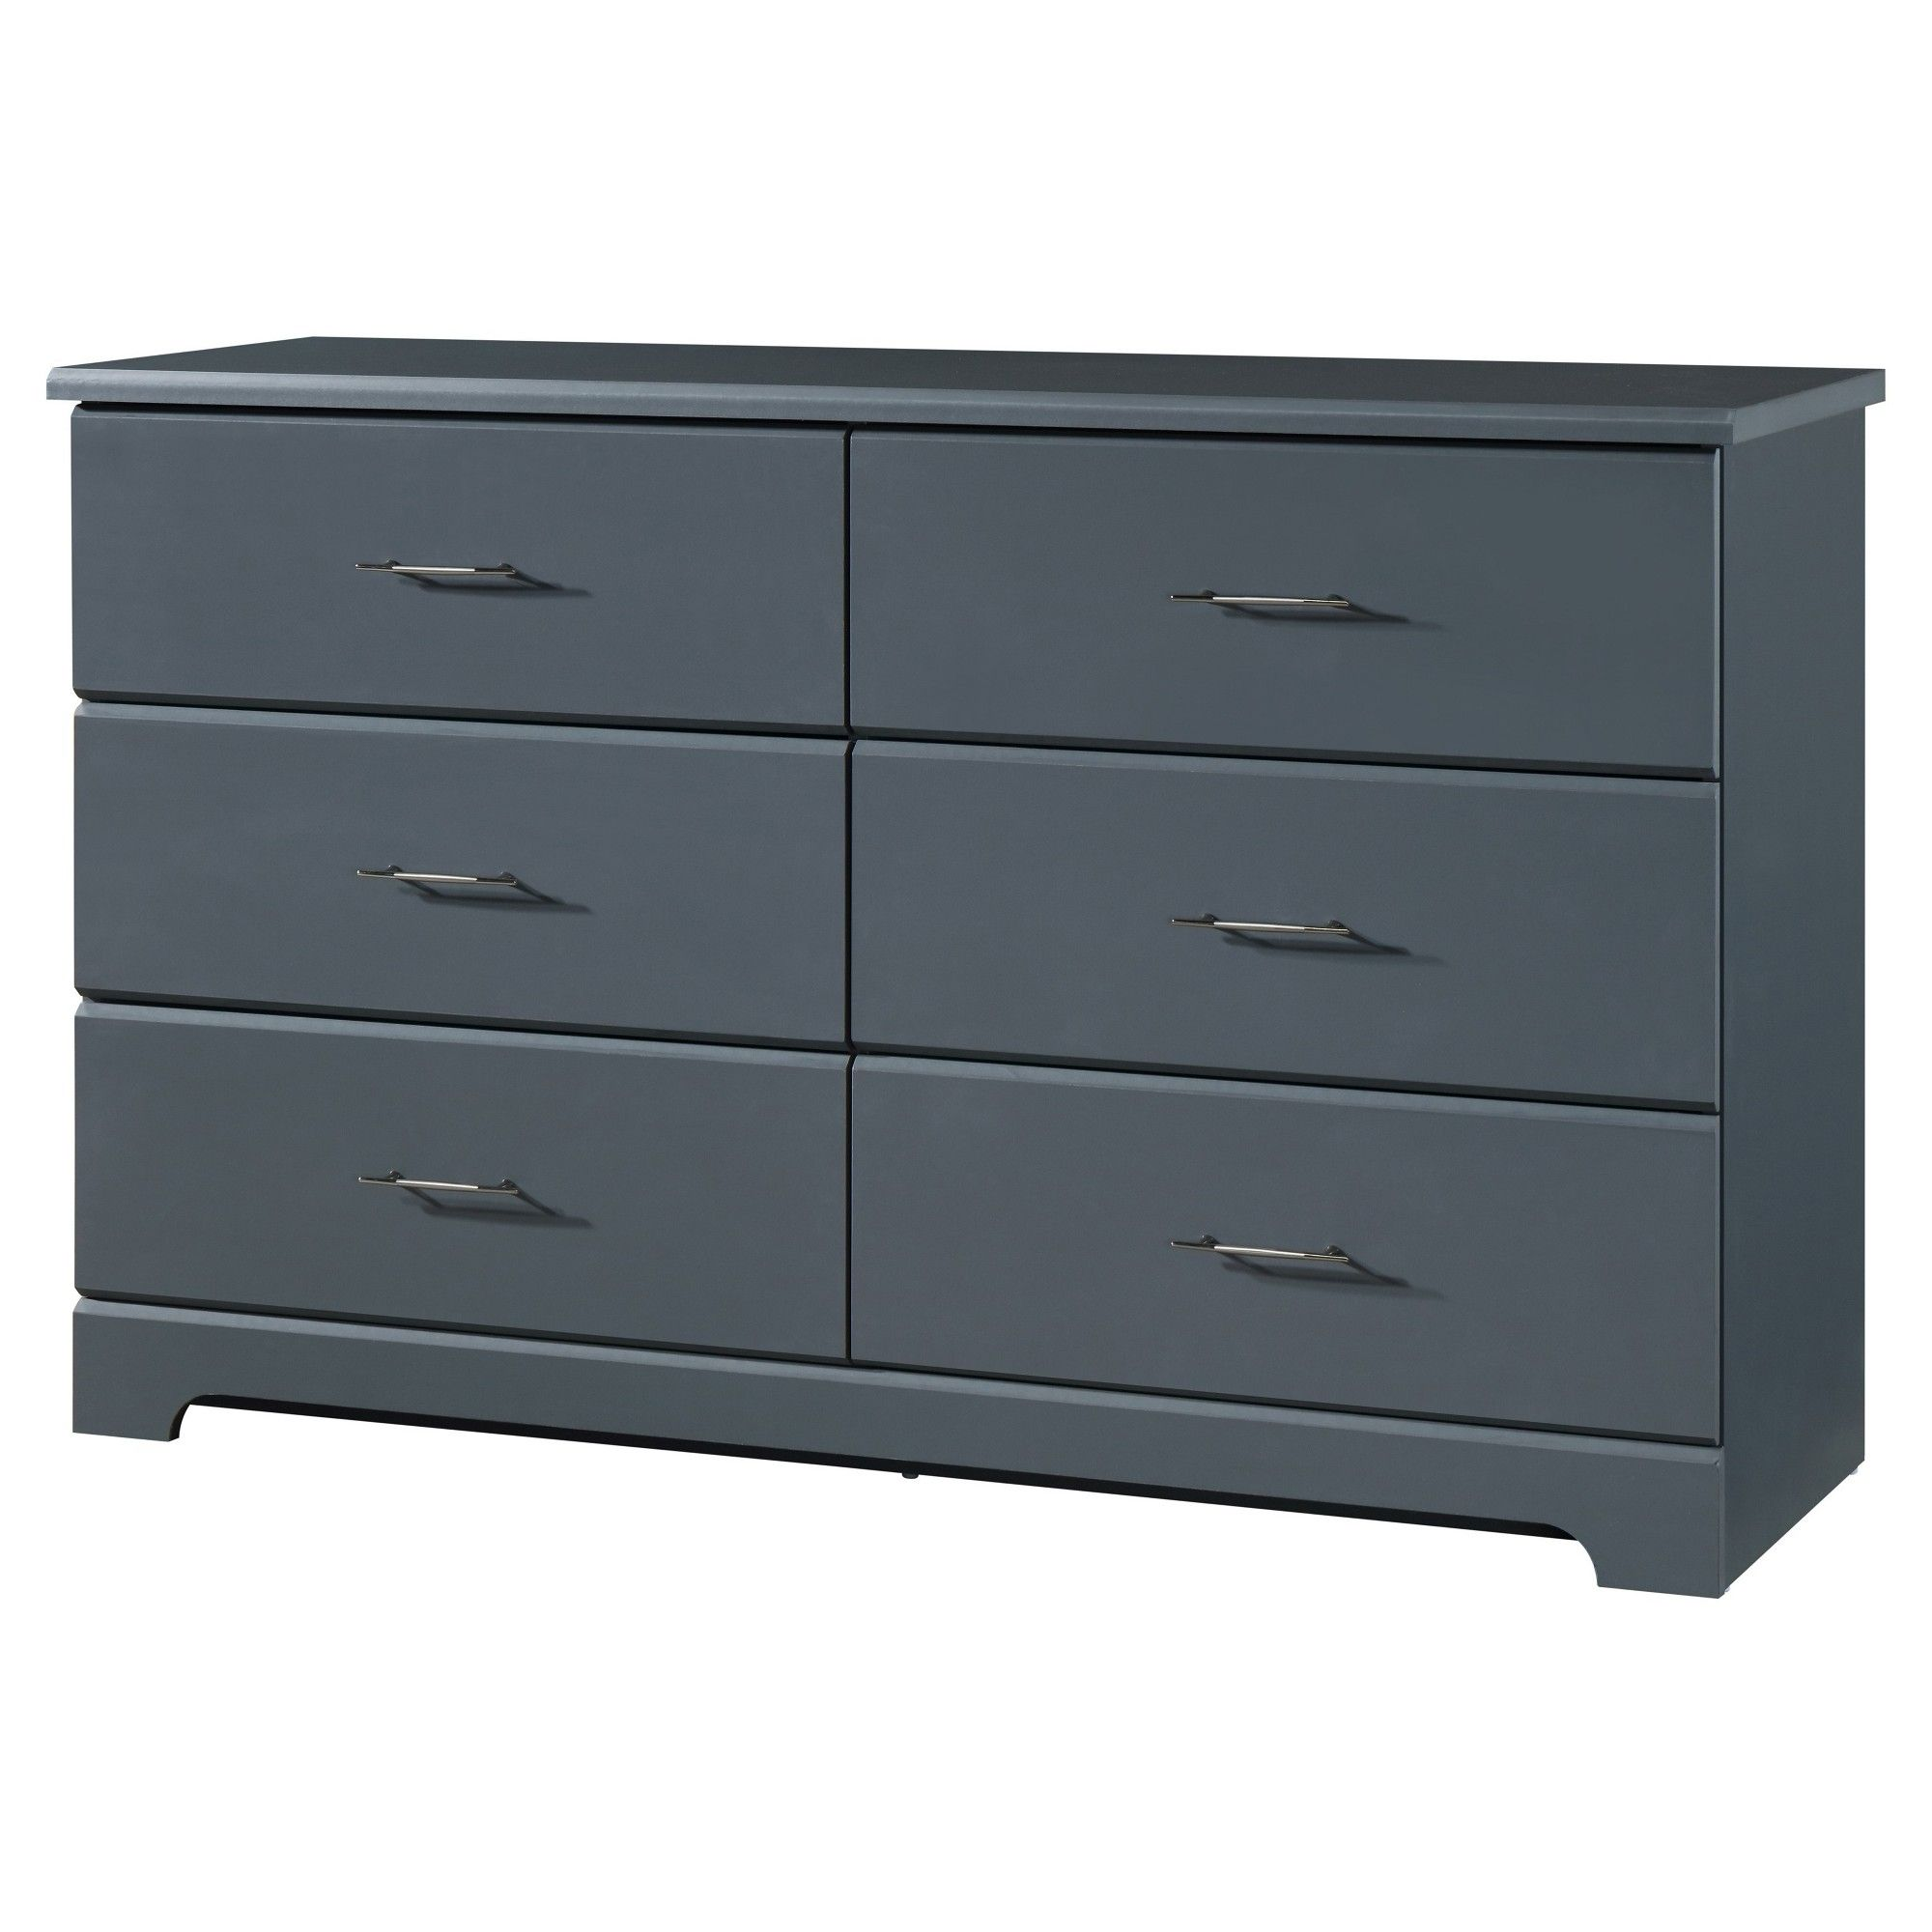 Storkcraft Brookside 6 Drawer Dresser Gray 6 Drawer